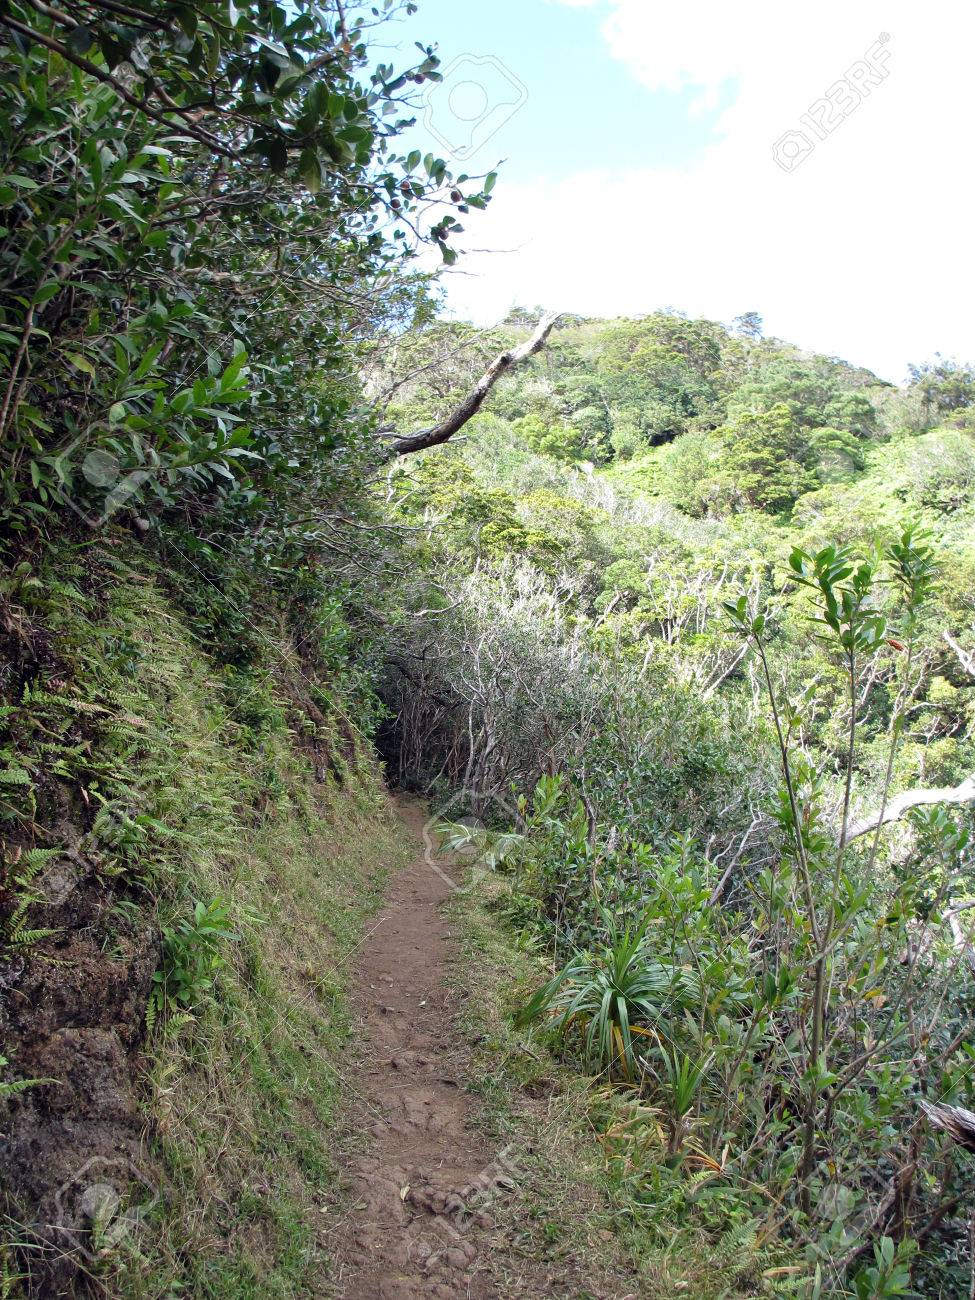 Cliffside Path Surrounded With Grass Bushes And Trees On